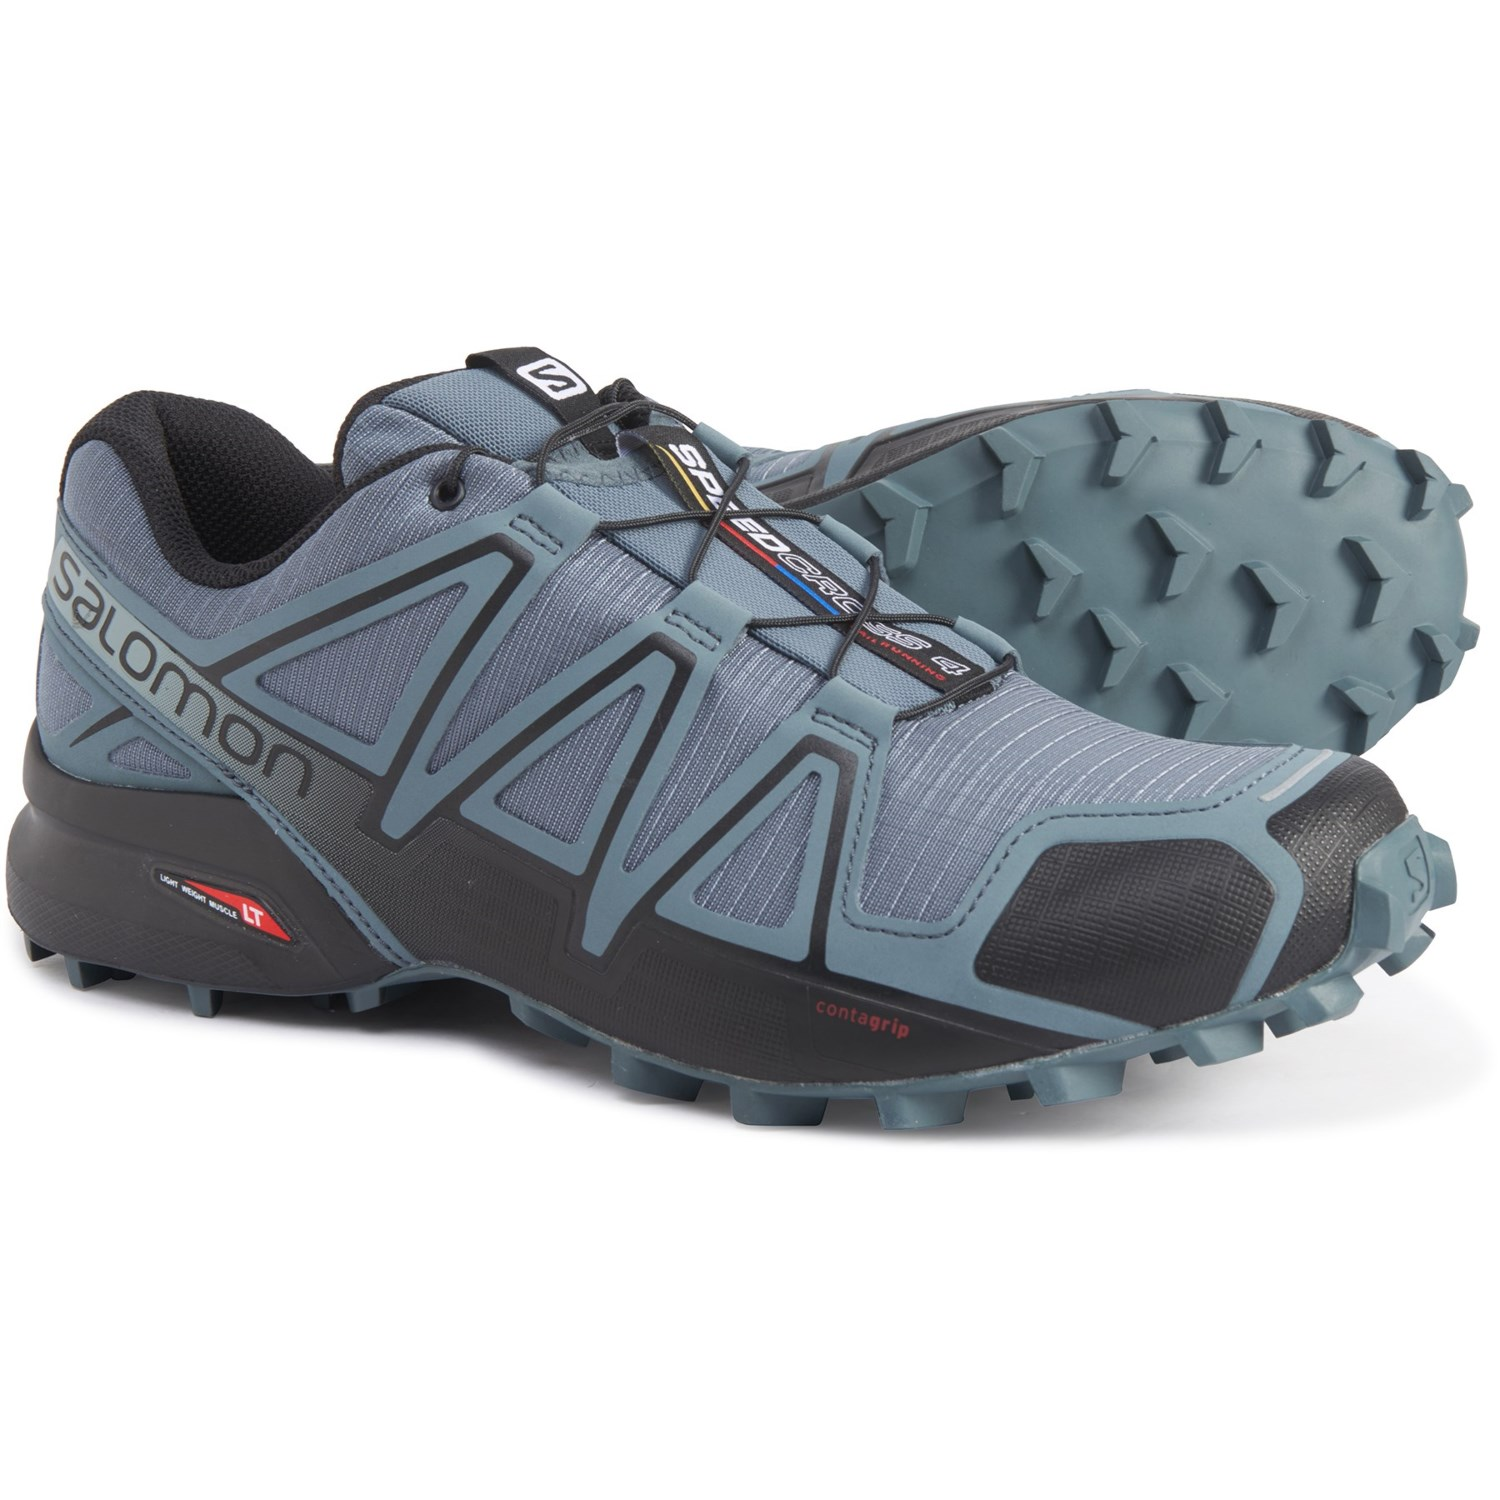 Salomon Clearance Online | Our Big Saving On Running, Trail